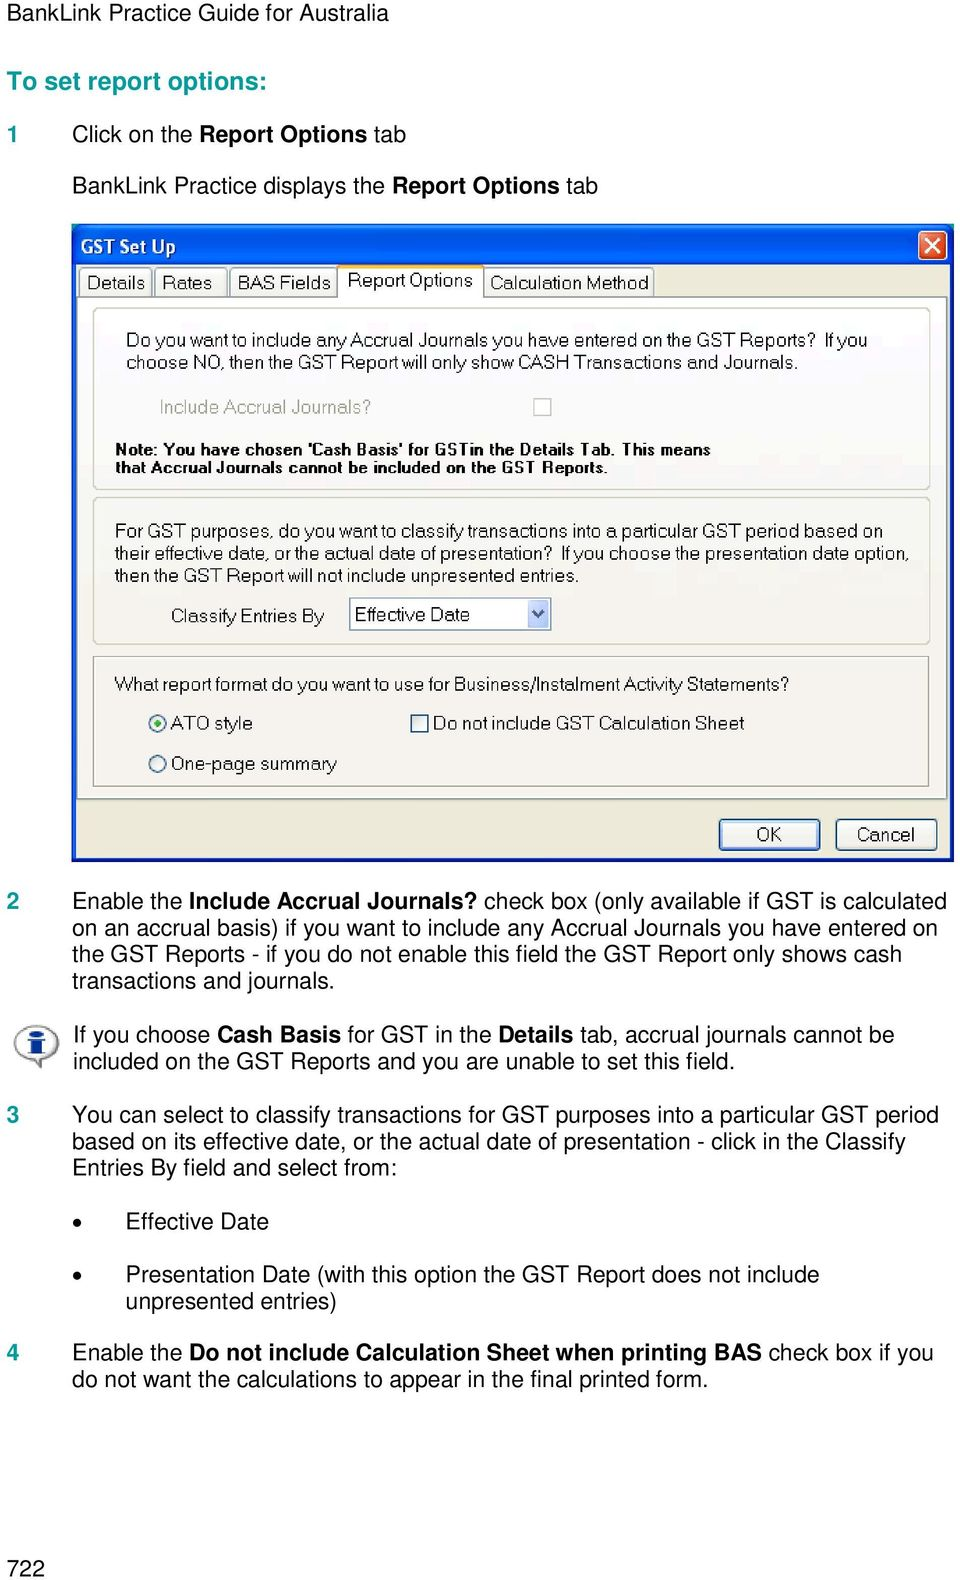 only shows cash transactions and journals. If you choose Cash Basis for GST in the Details tab, accrual journals cannot be included on the GST Reports and you are unable to set this field.